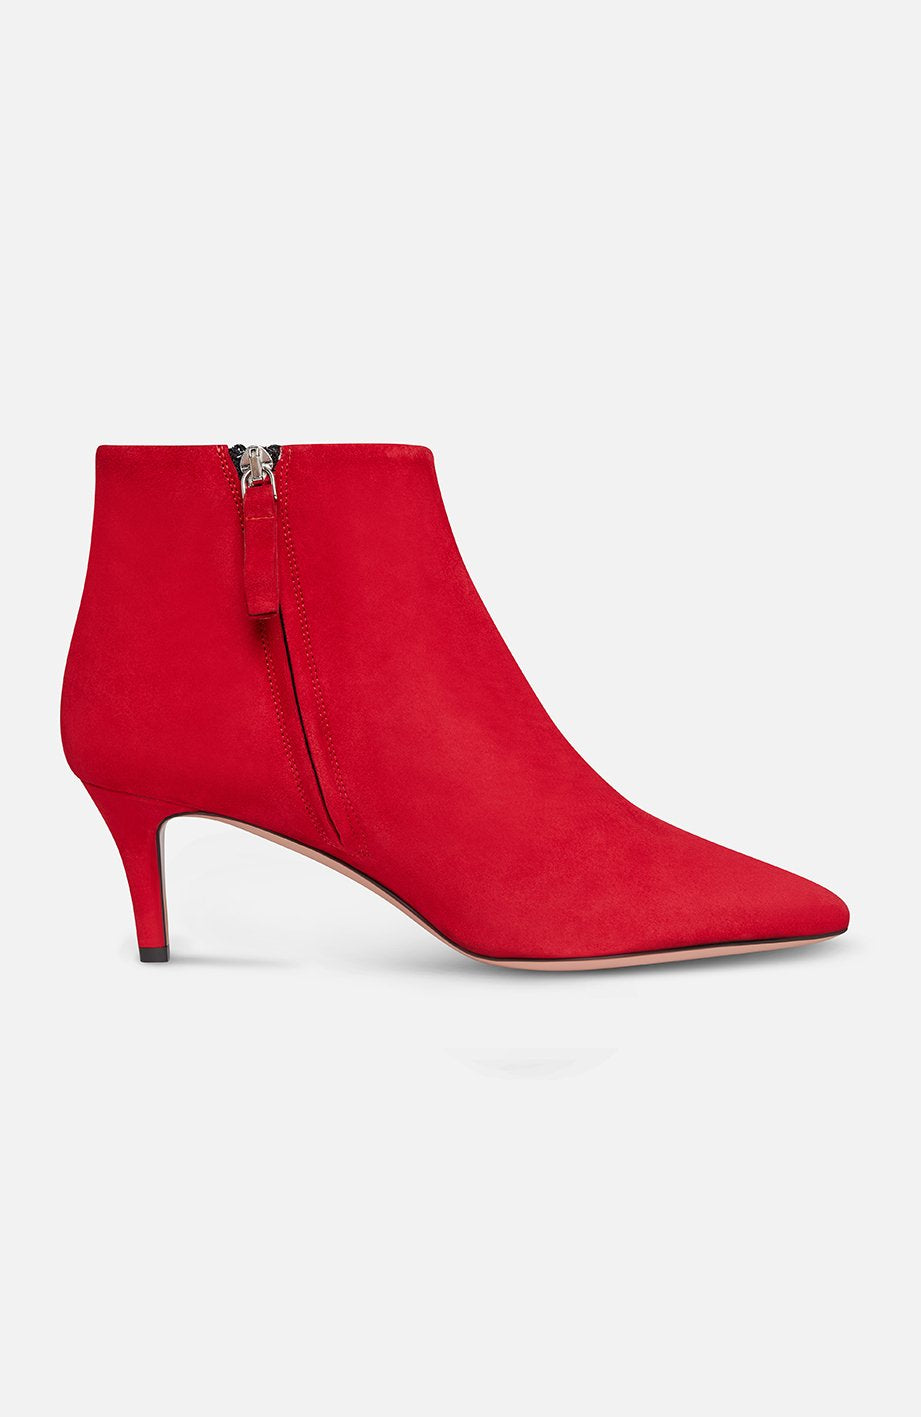 Parosh Sinshoe Red Ankle Boots